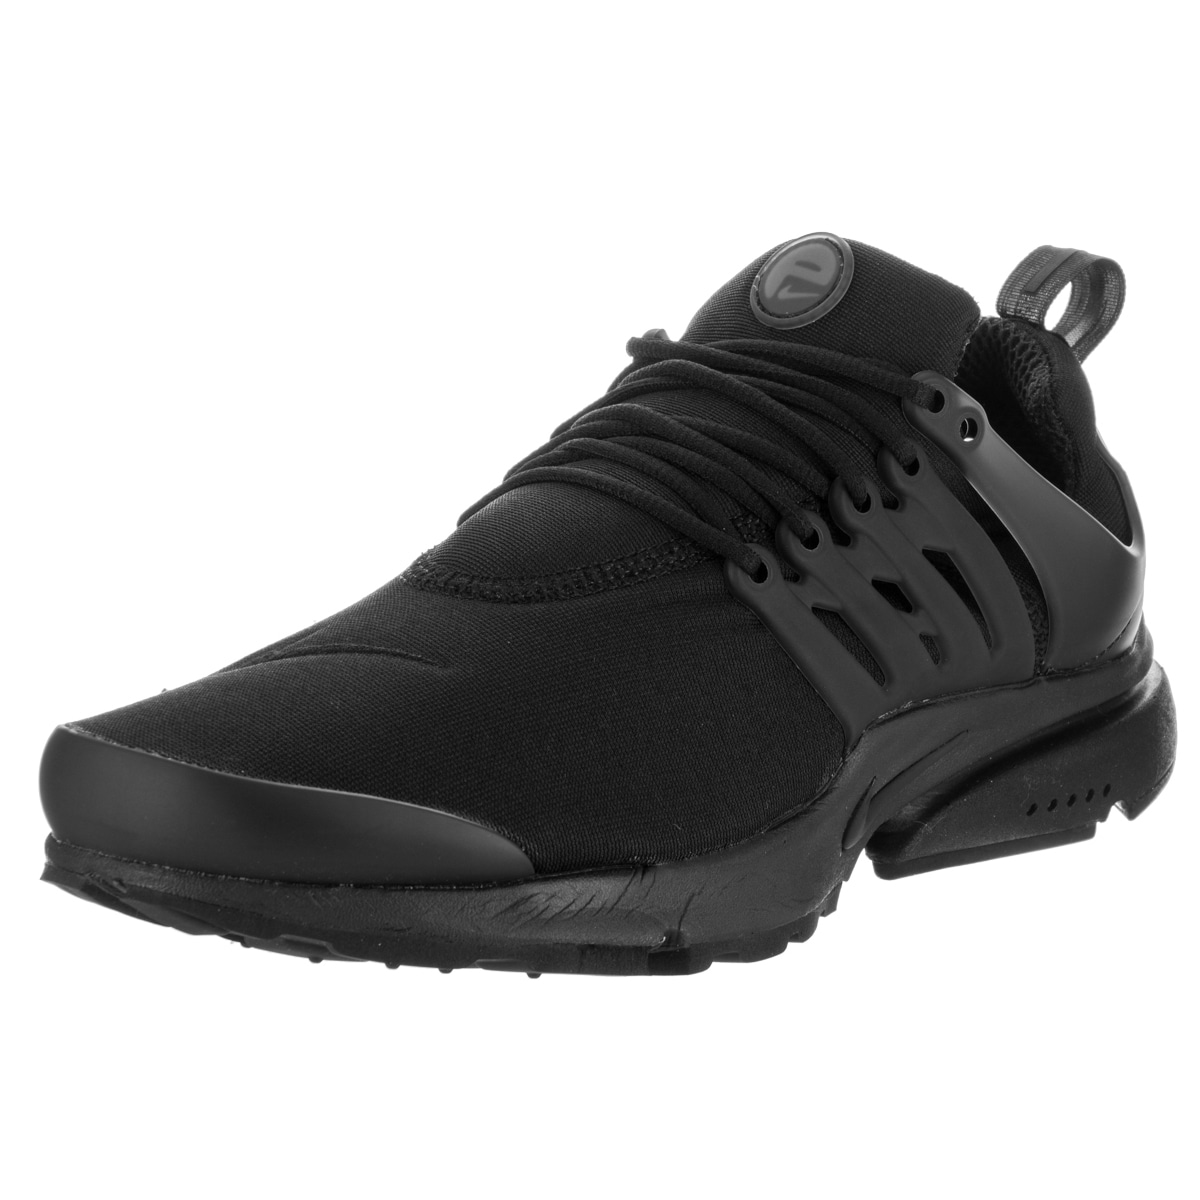 Nike Men's Air Presto Black Synthetic Leather Running Sho...